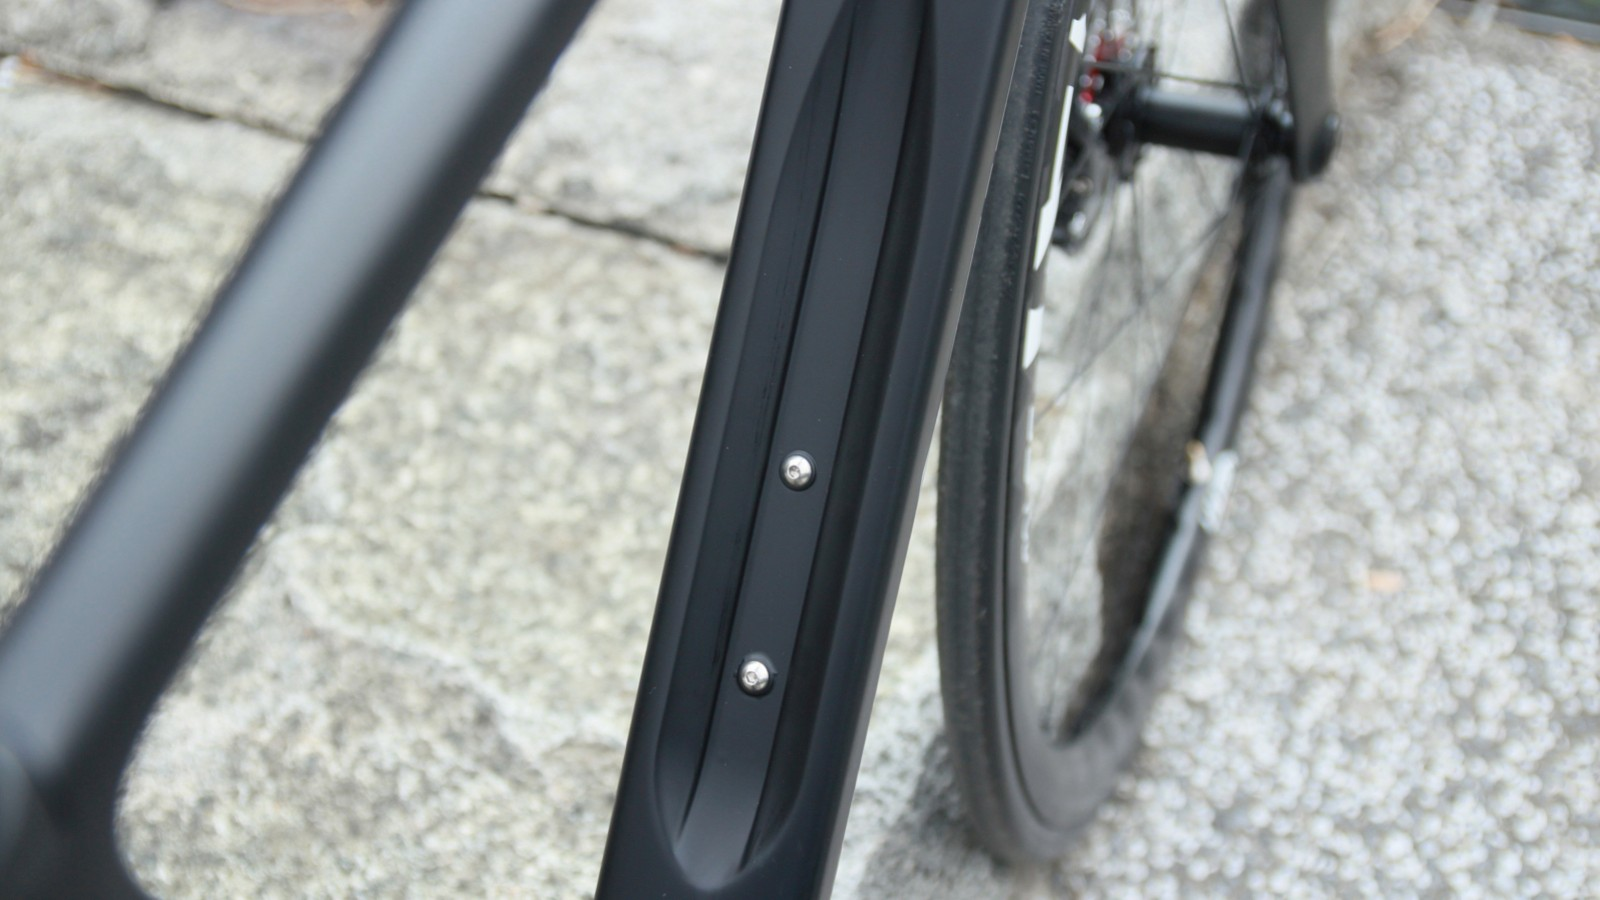 Here's the downtube of the Velocite Syn, with water bottle recess